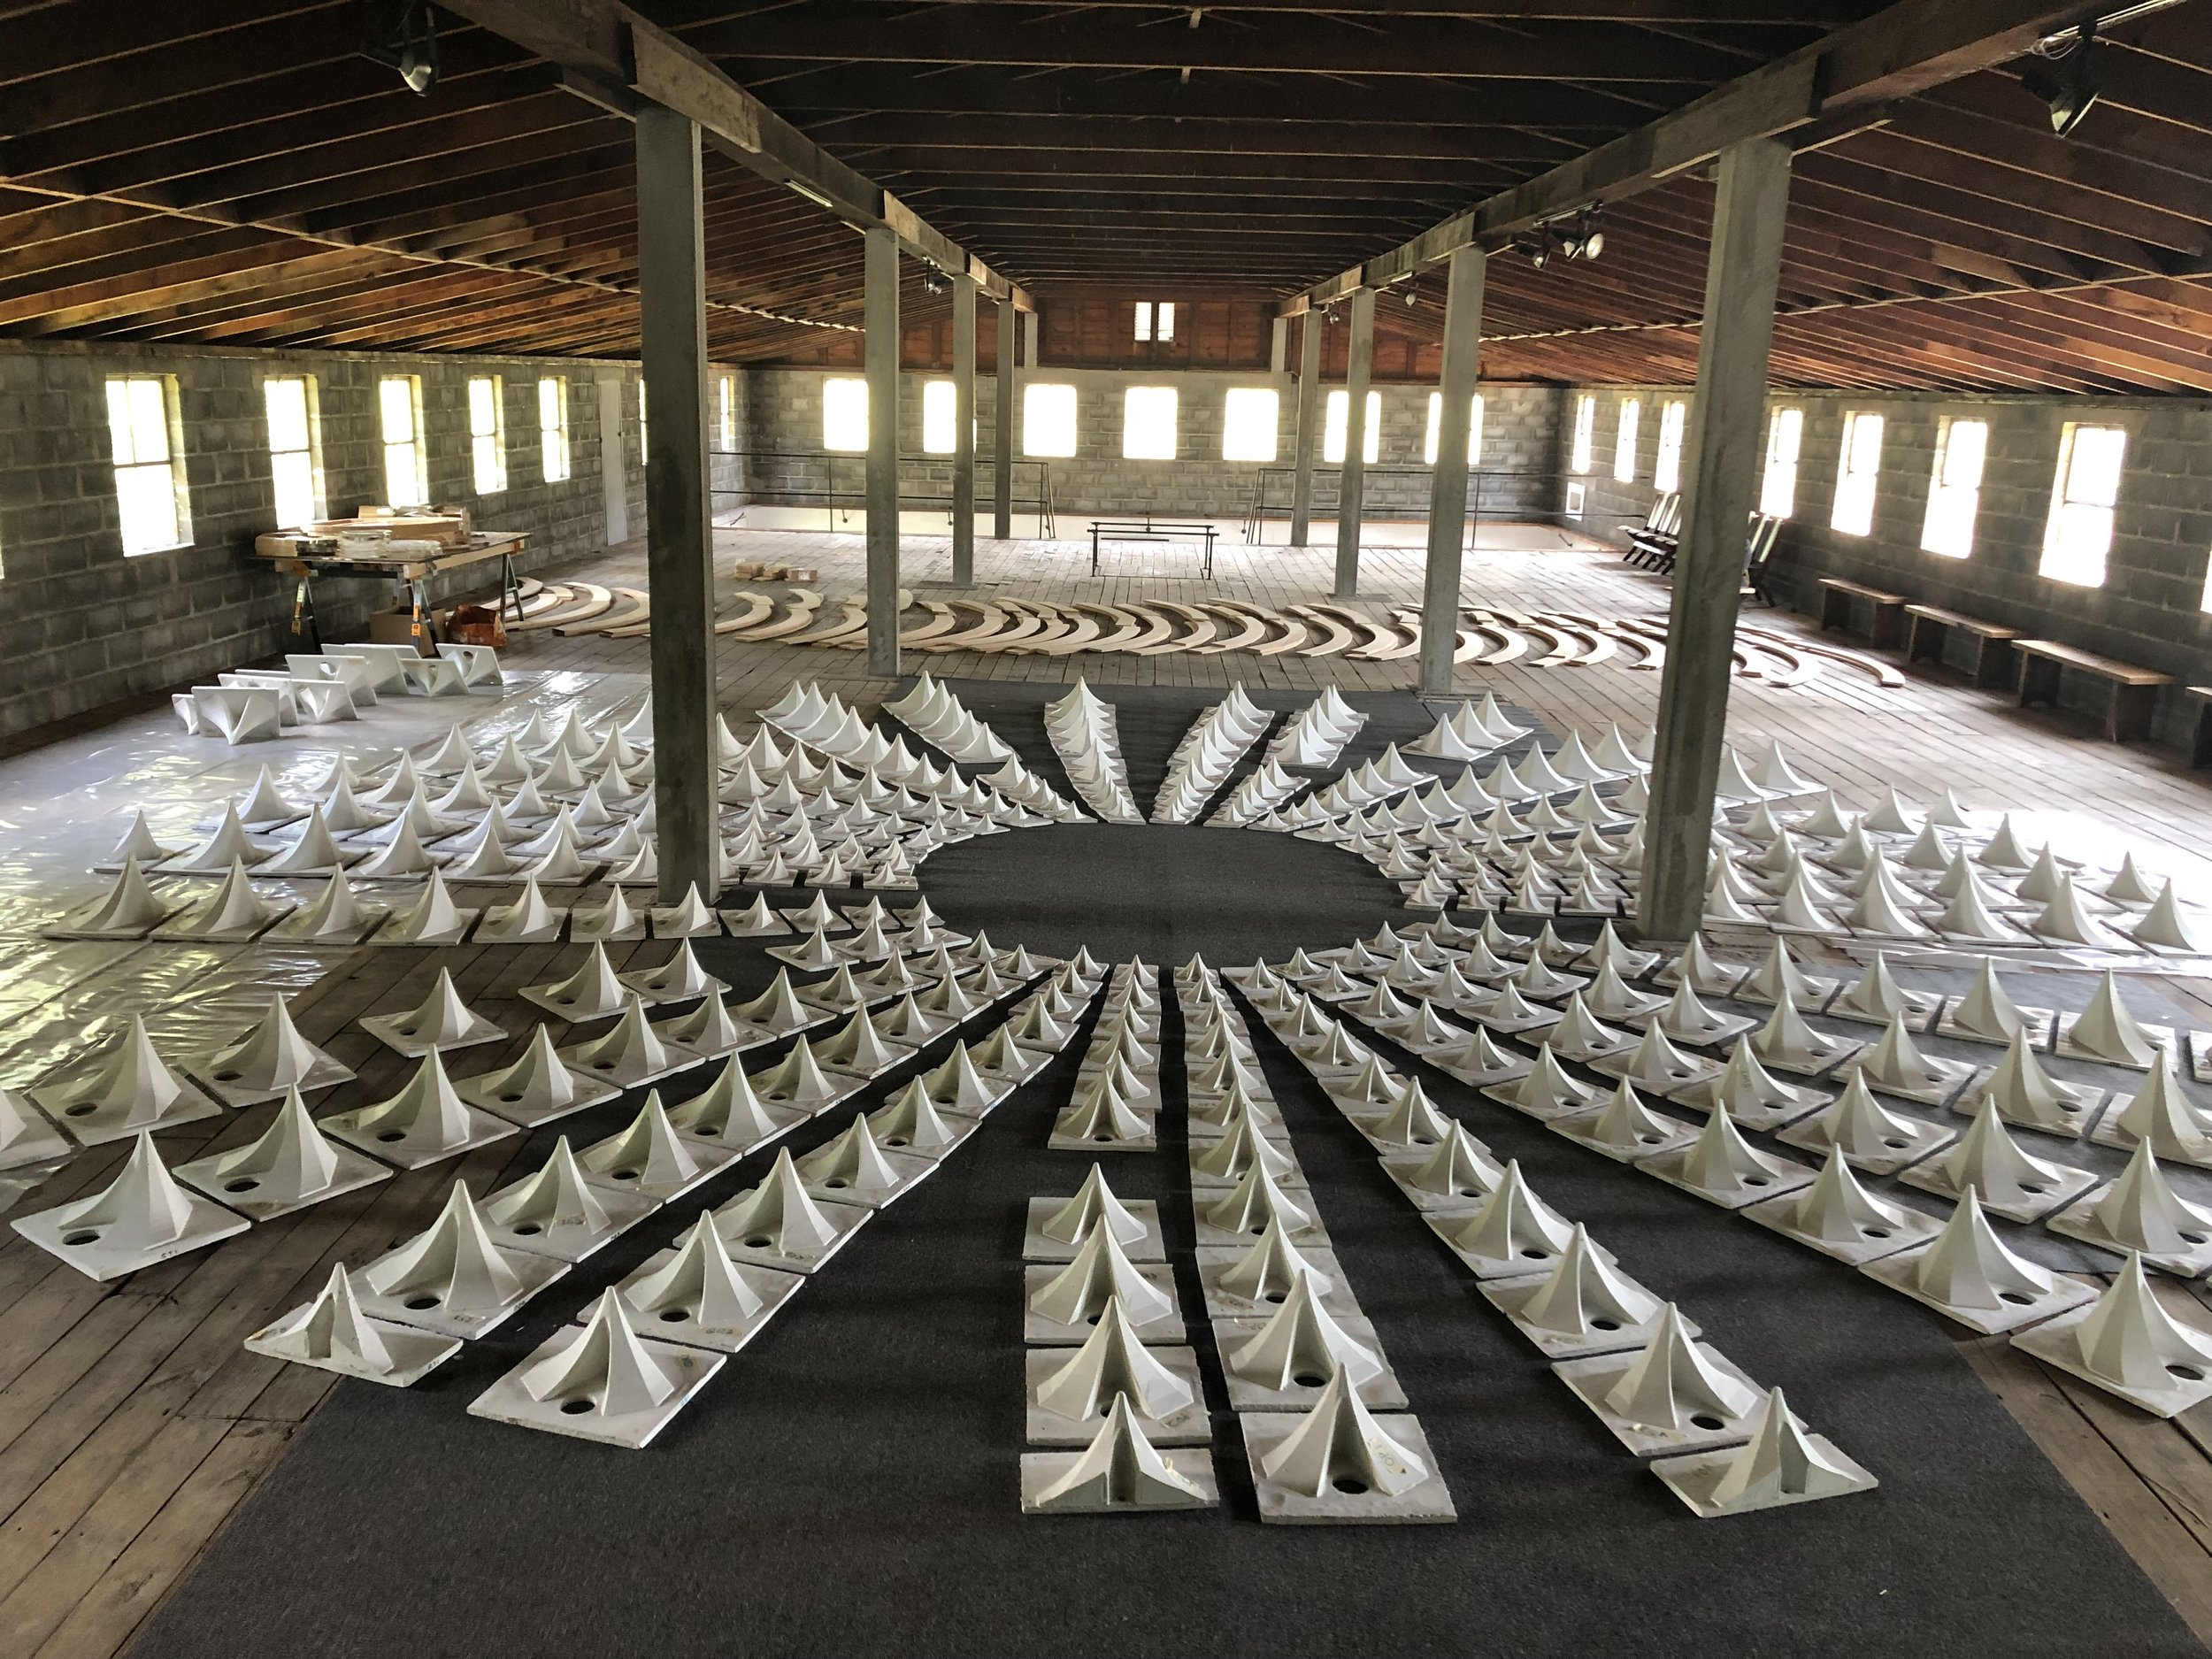 320 UHPC Ductal Panels at artist and project curator Francine Hunter McGivern's The Frank Institute at CR-10, Germantown NY